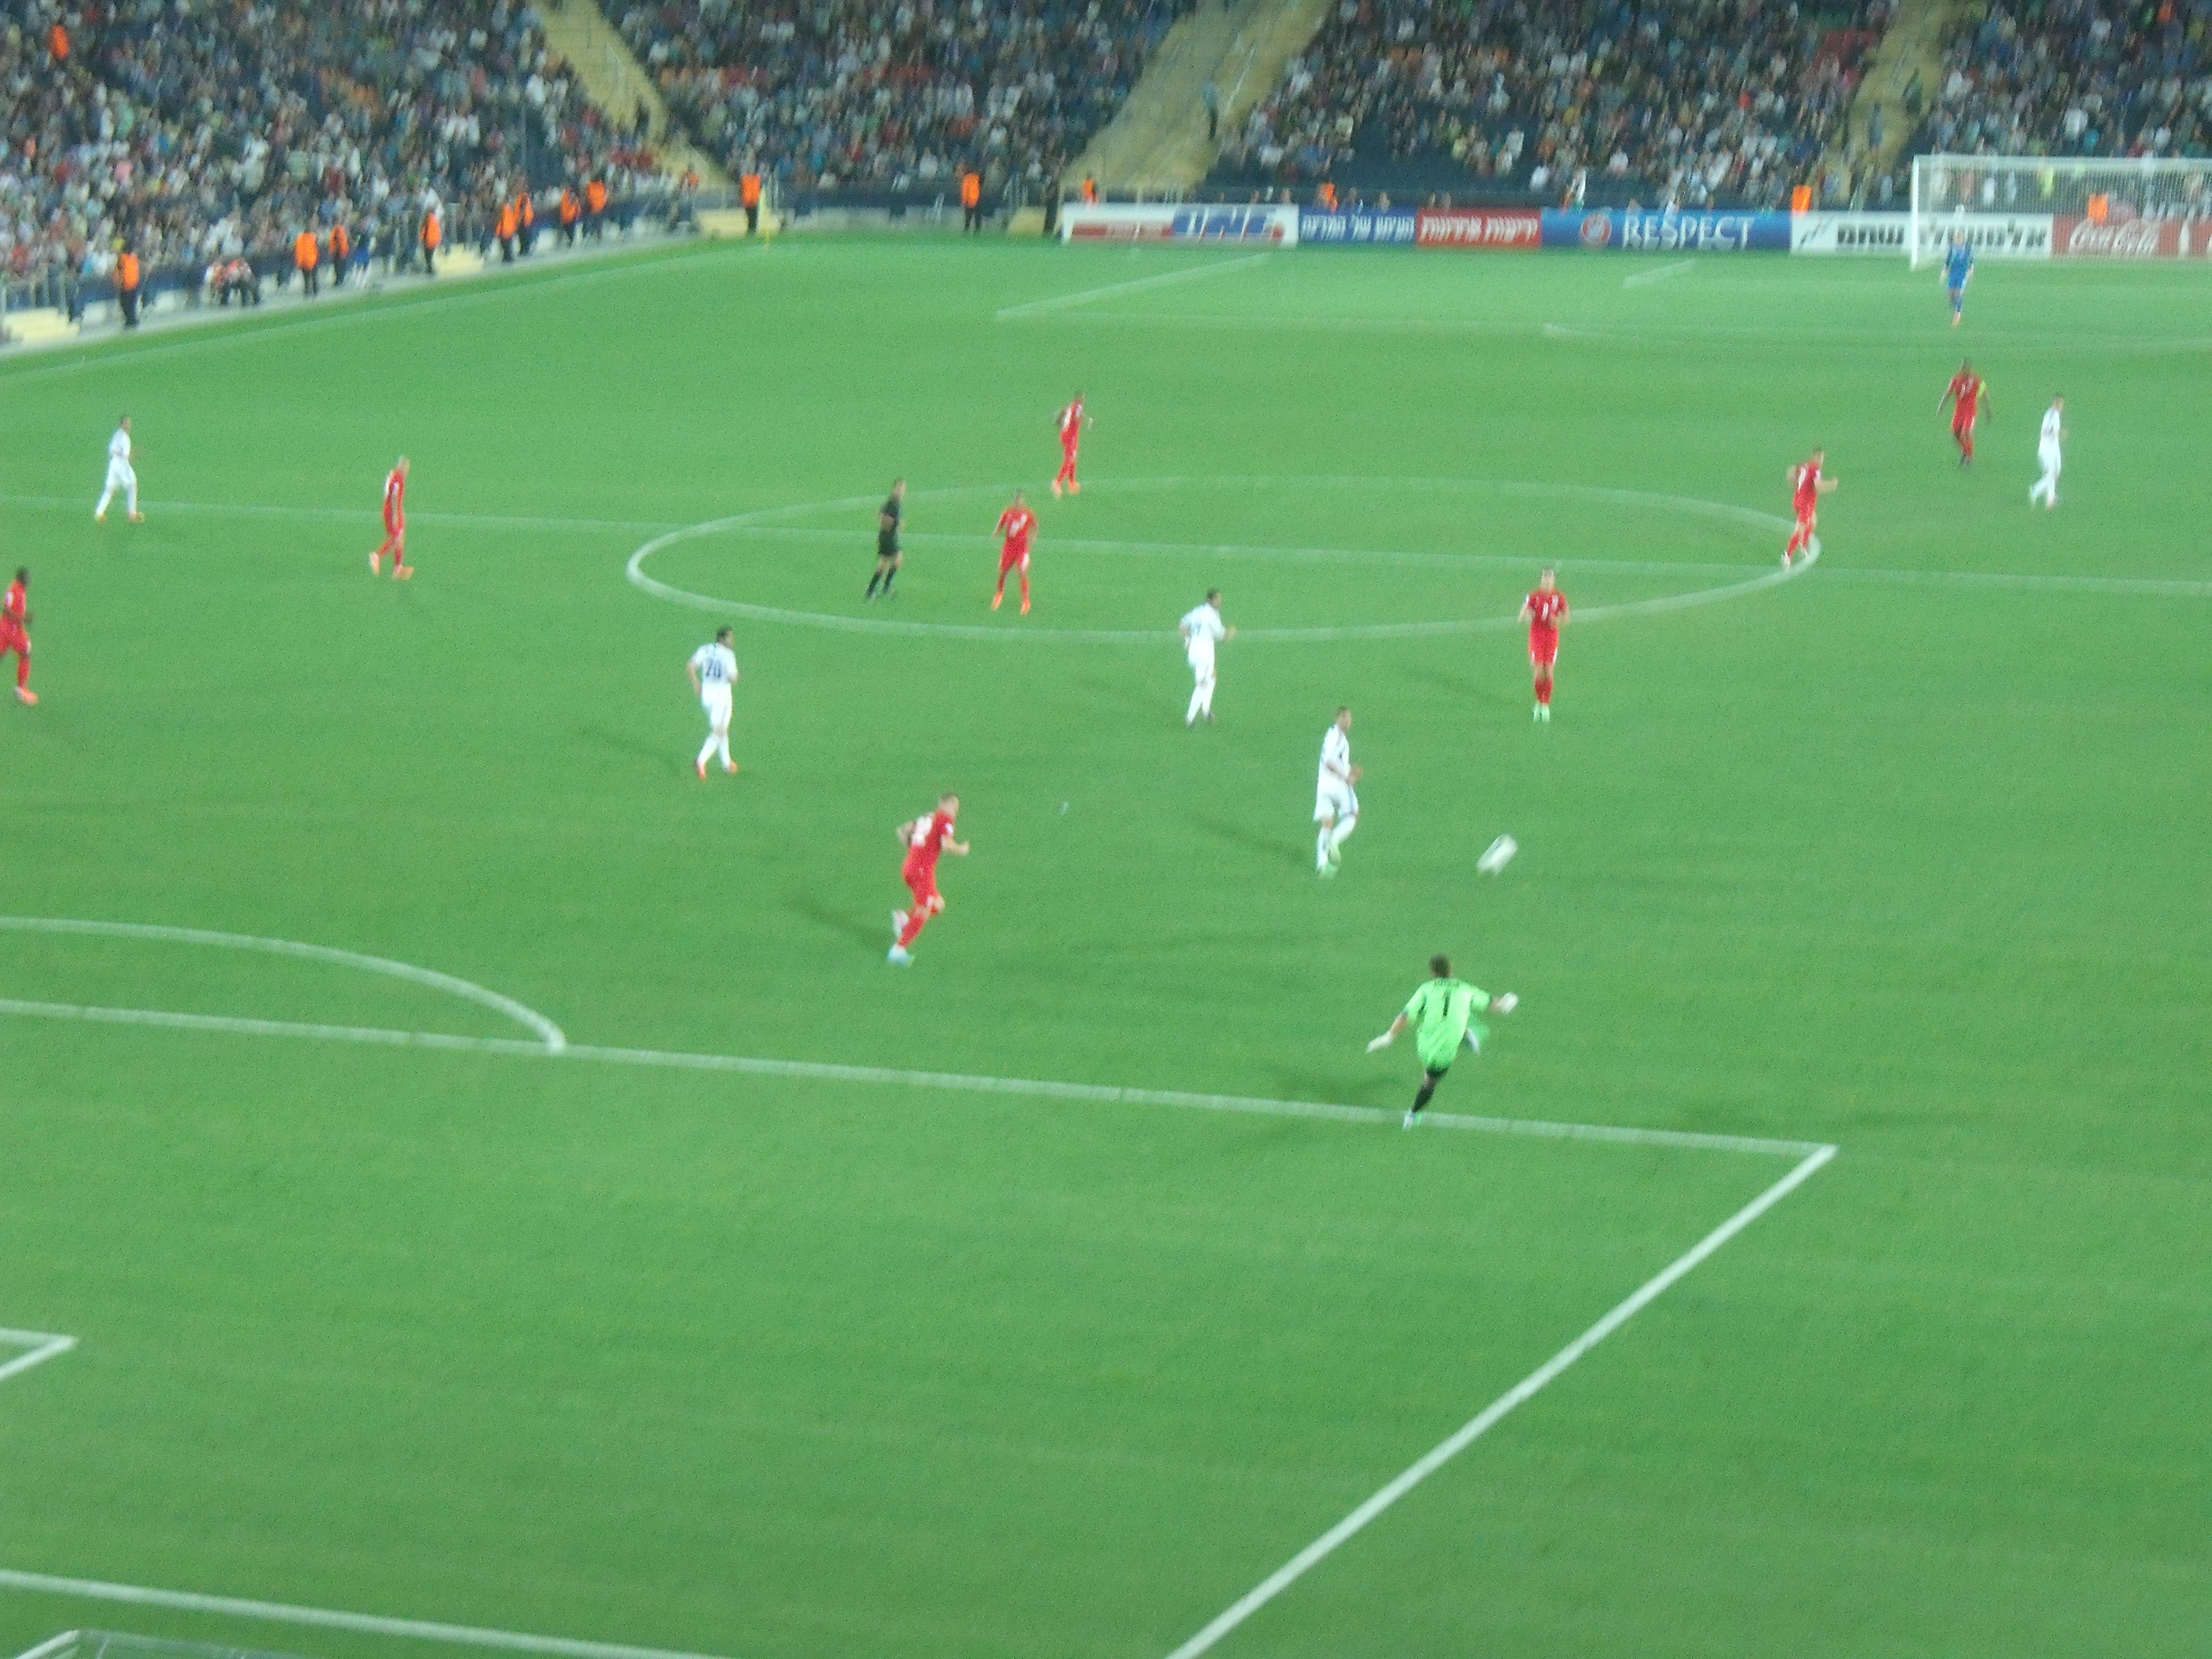 Israel's goalkeeper clears the ball as Israel go on the attack.